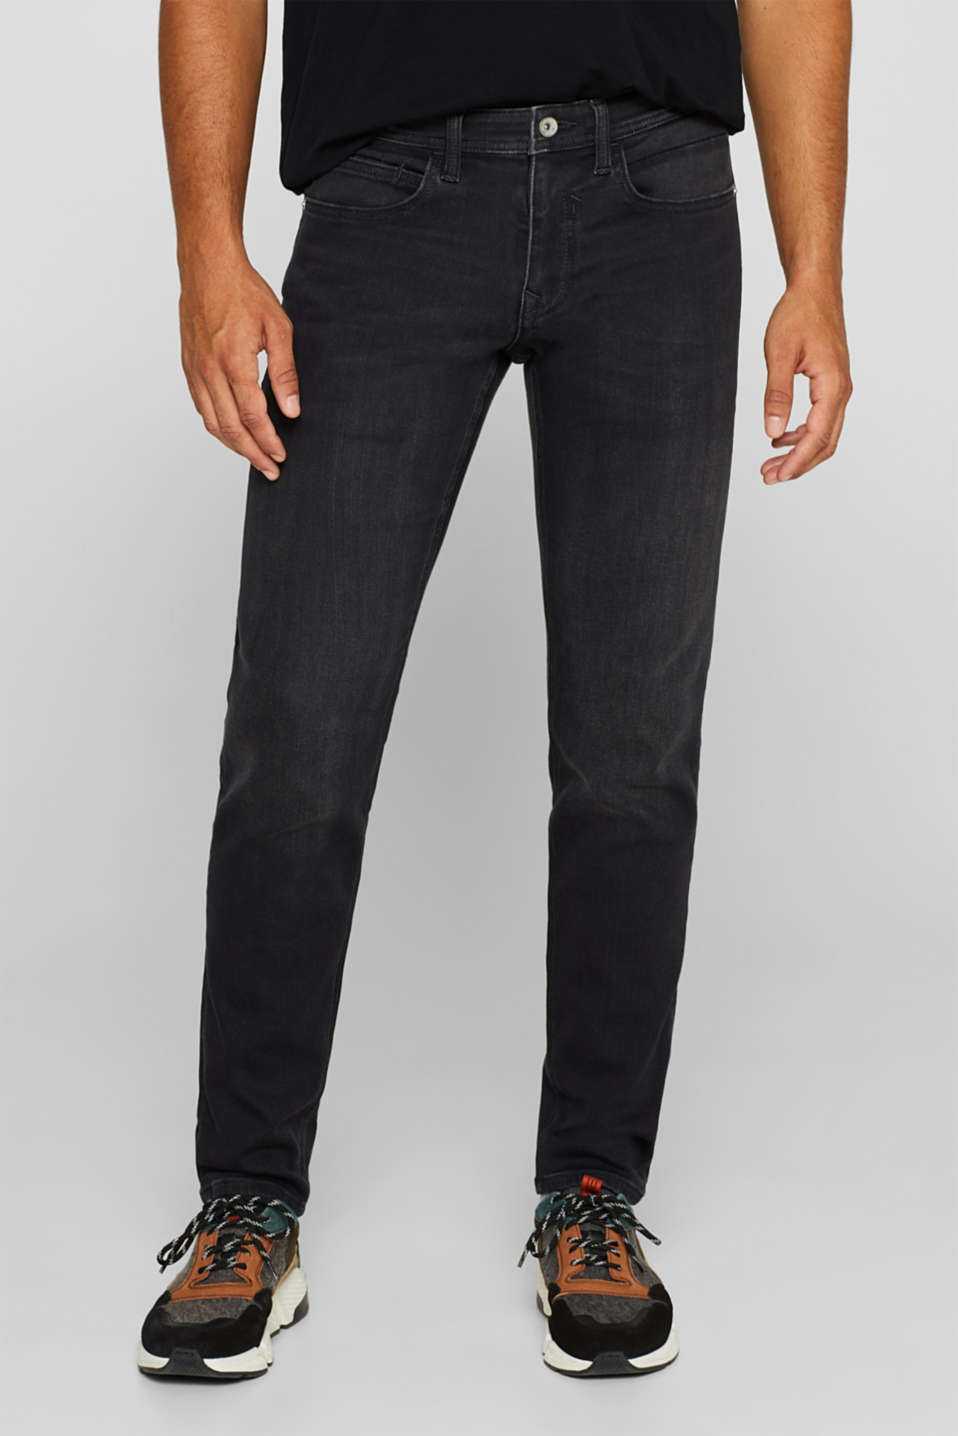 Esprit - Superstretchjeans van joggingstof